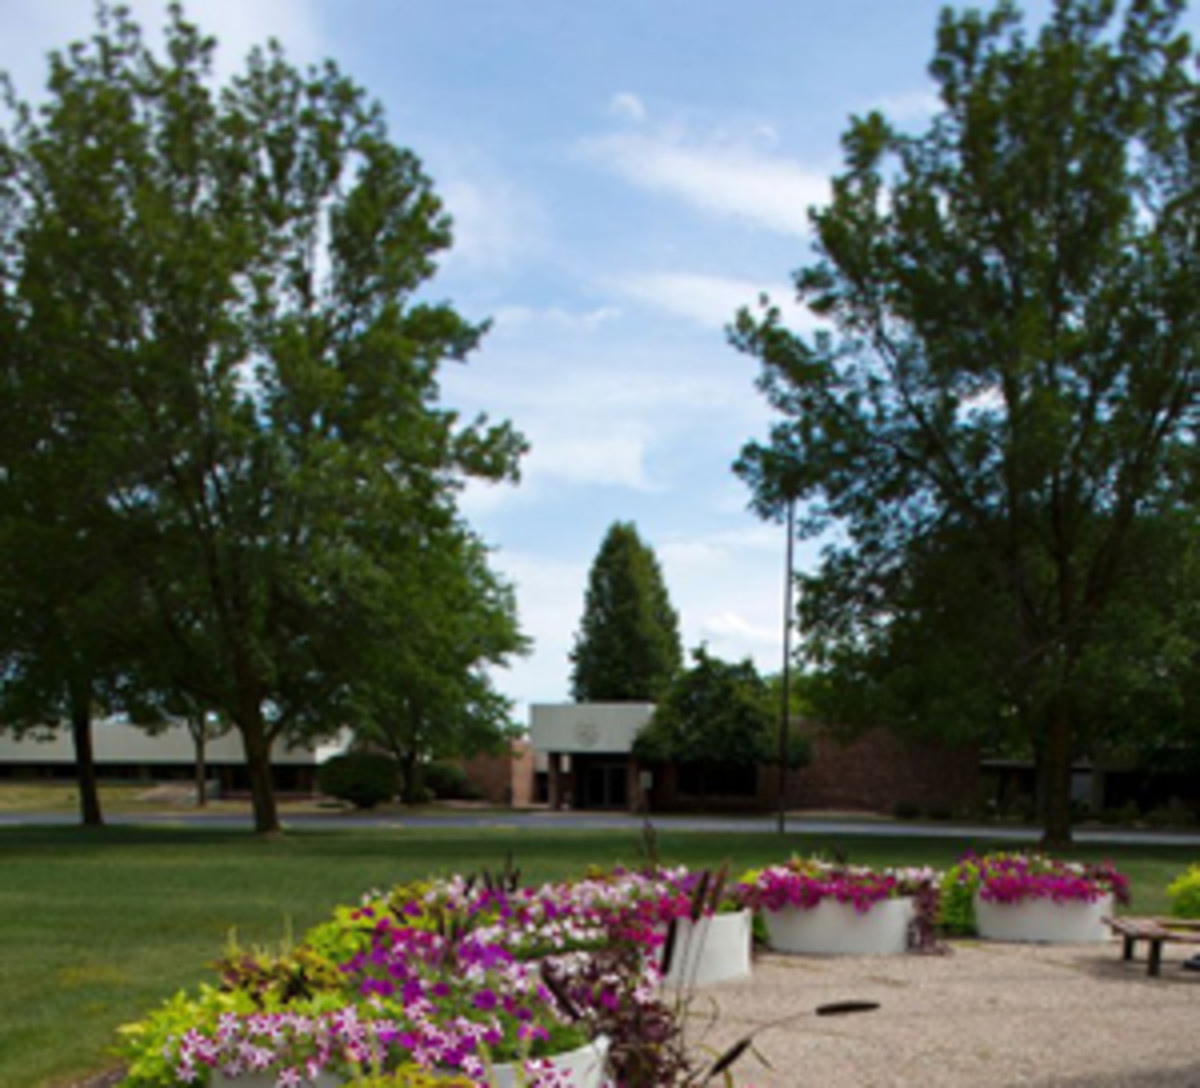 he long-time headquarters for Krause Publications (a division of F+W Media, Inc.) in Iola, Wis., will soon be vacated for a new office in the city of Stevens Point.